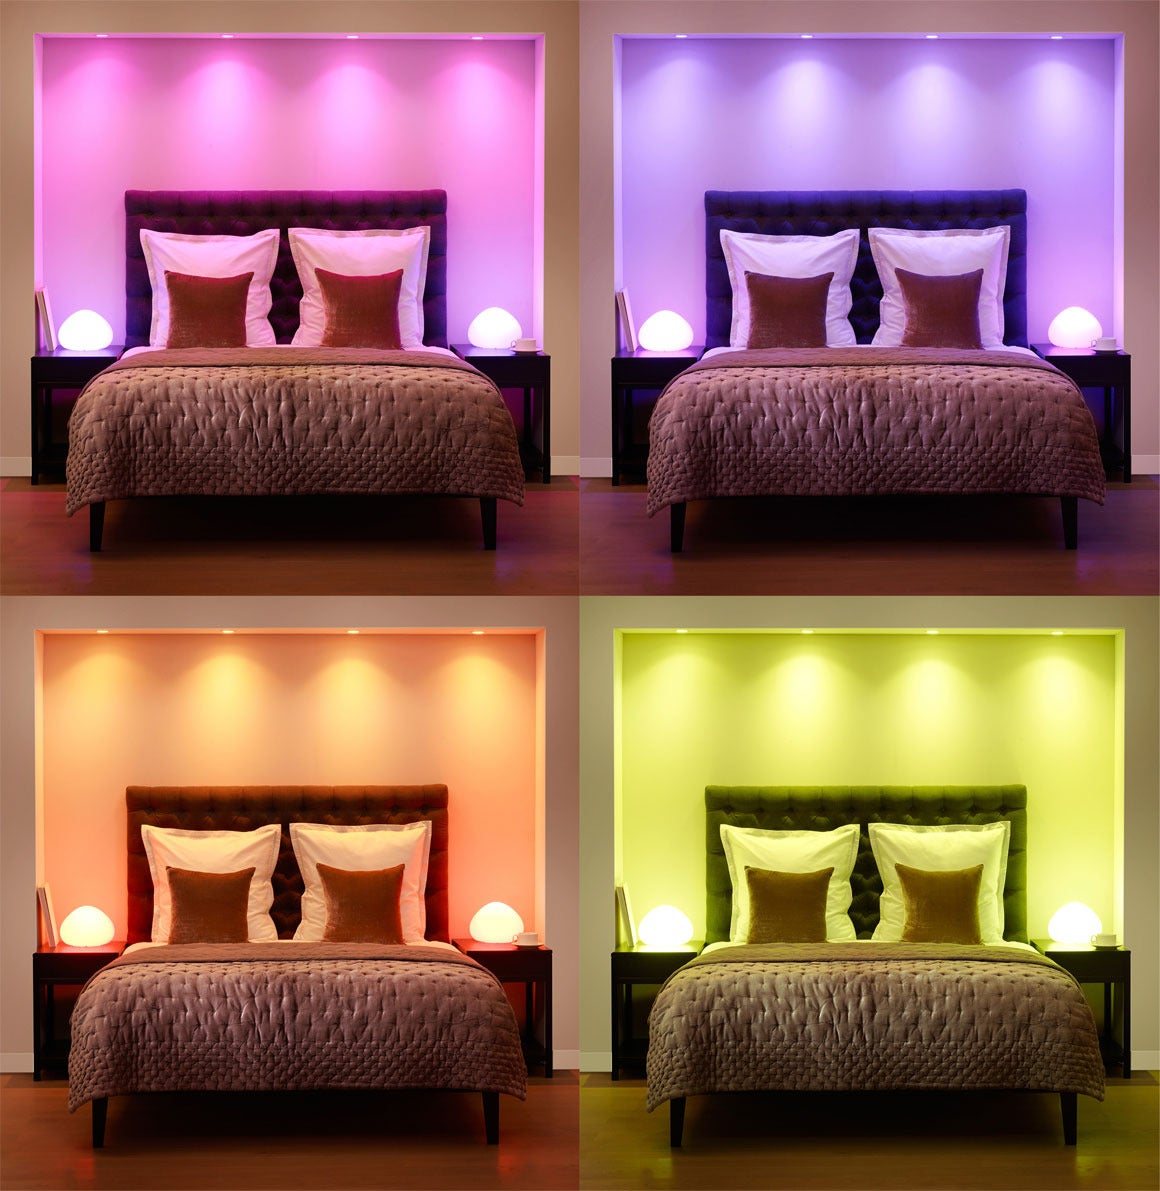 How to optimize your home lighting design based on color for Bedroom designs light